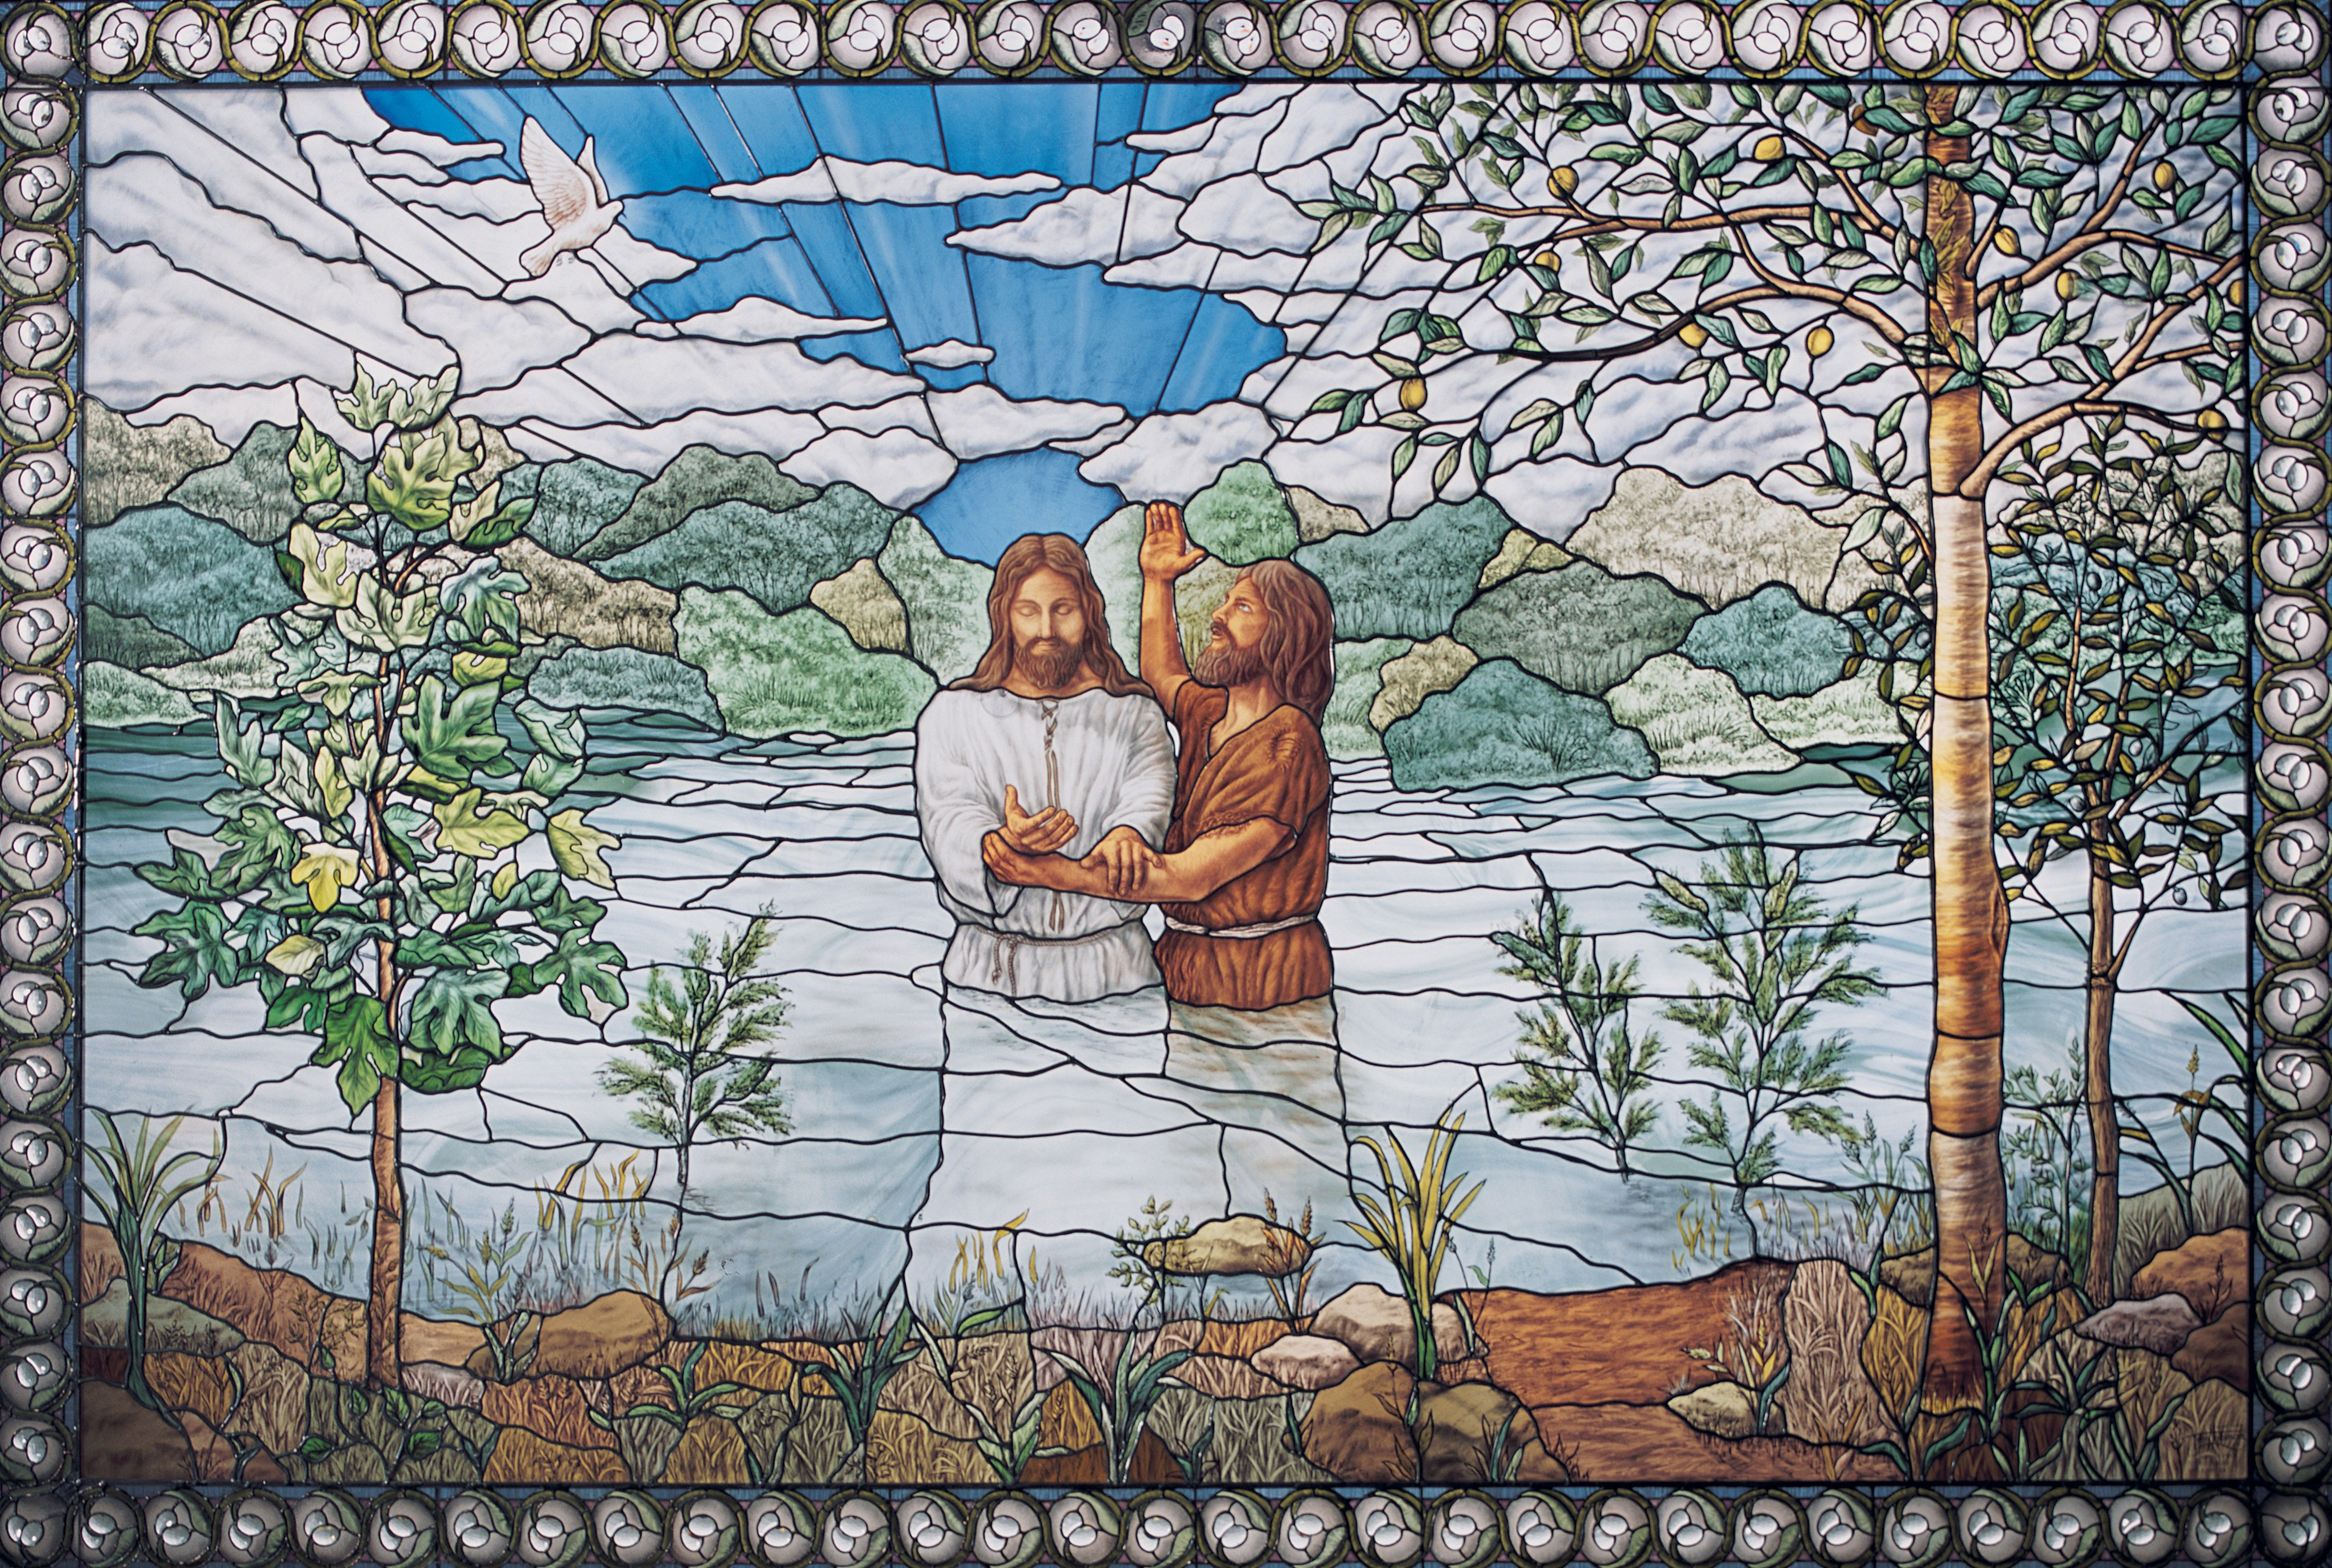 A stained glass window depicting Jesus Christ being baptized by John the Baptist.